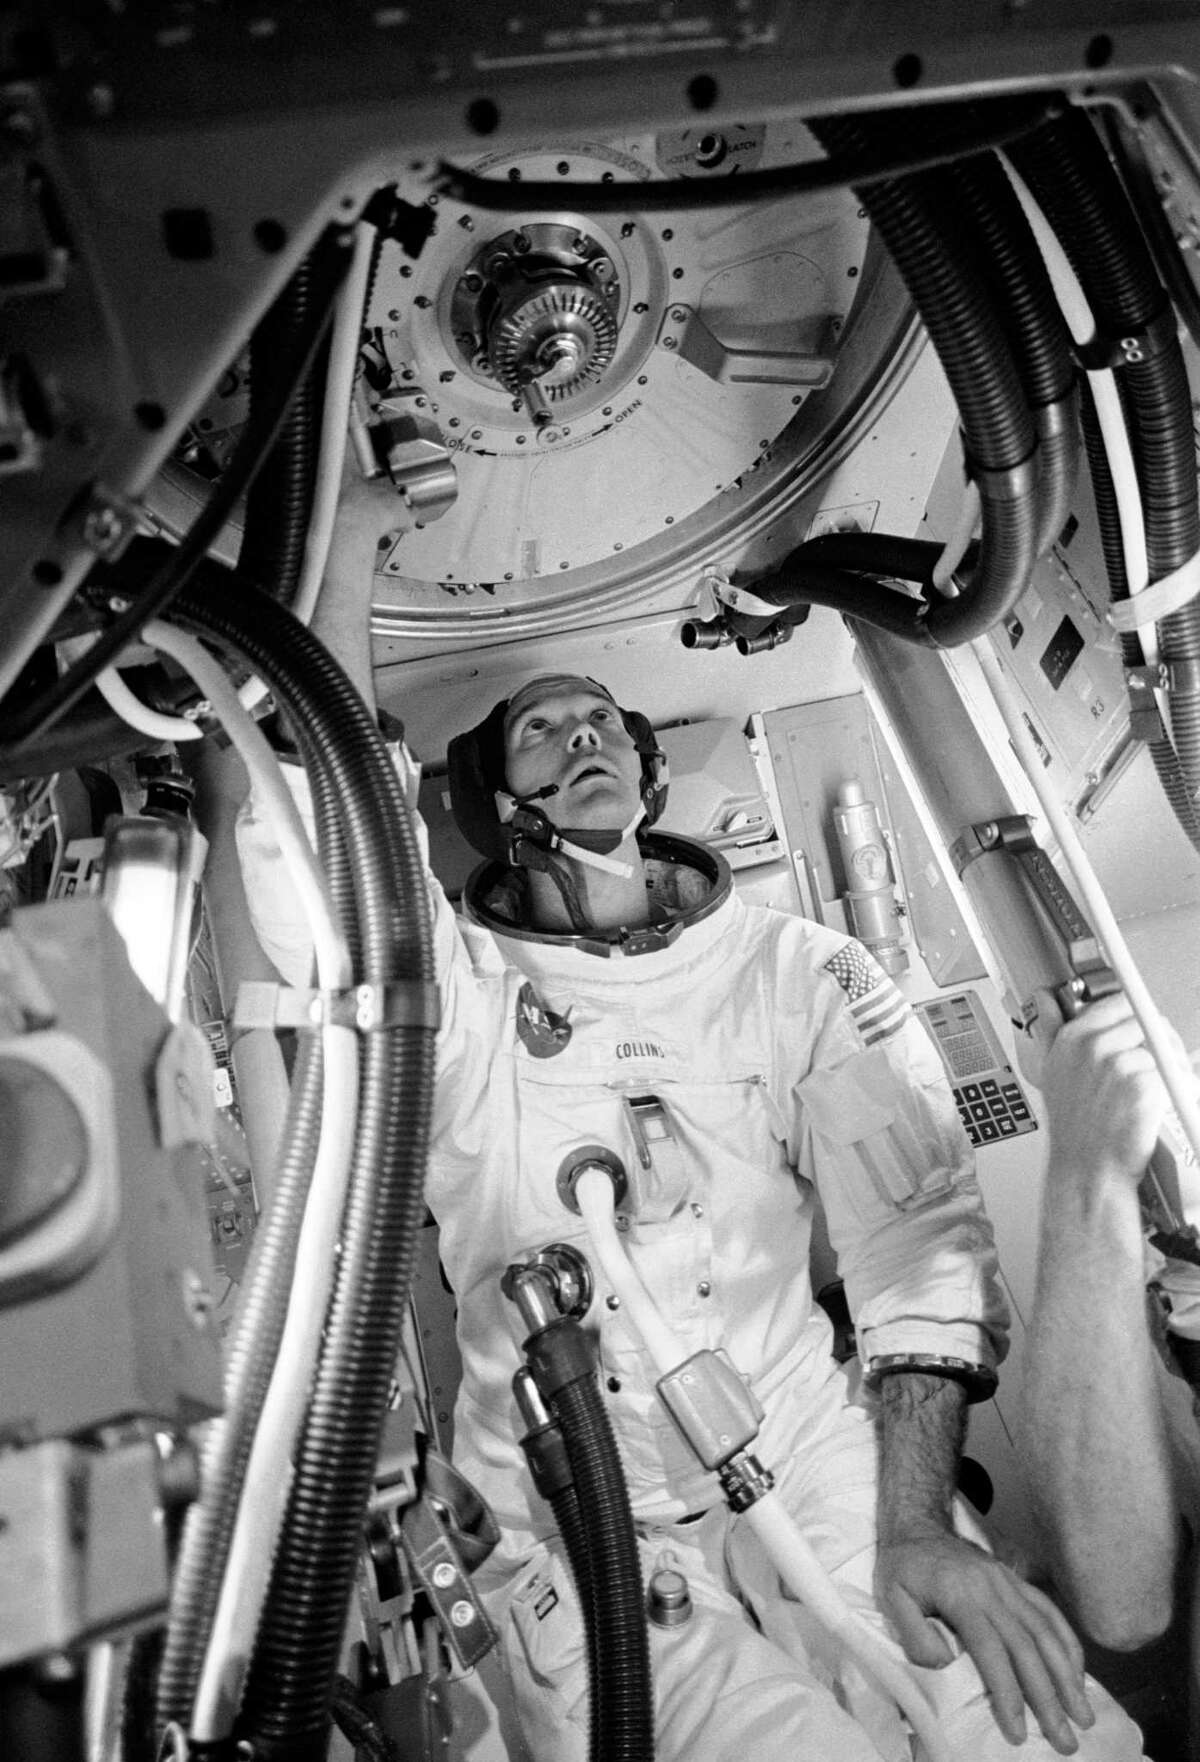 In this June 28, 1969 photo, astronaut Michael Collins is shown inside an Apollo Command Module mockup practicing procedures with the docking mechanism in preparation for the scheduled Apollo 11 lunar landing mission. Collins was command module pilot of the Apollo 11.